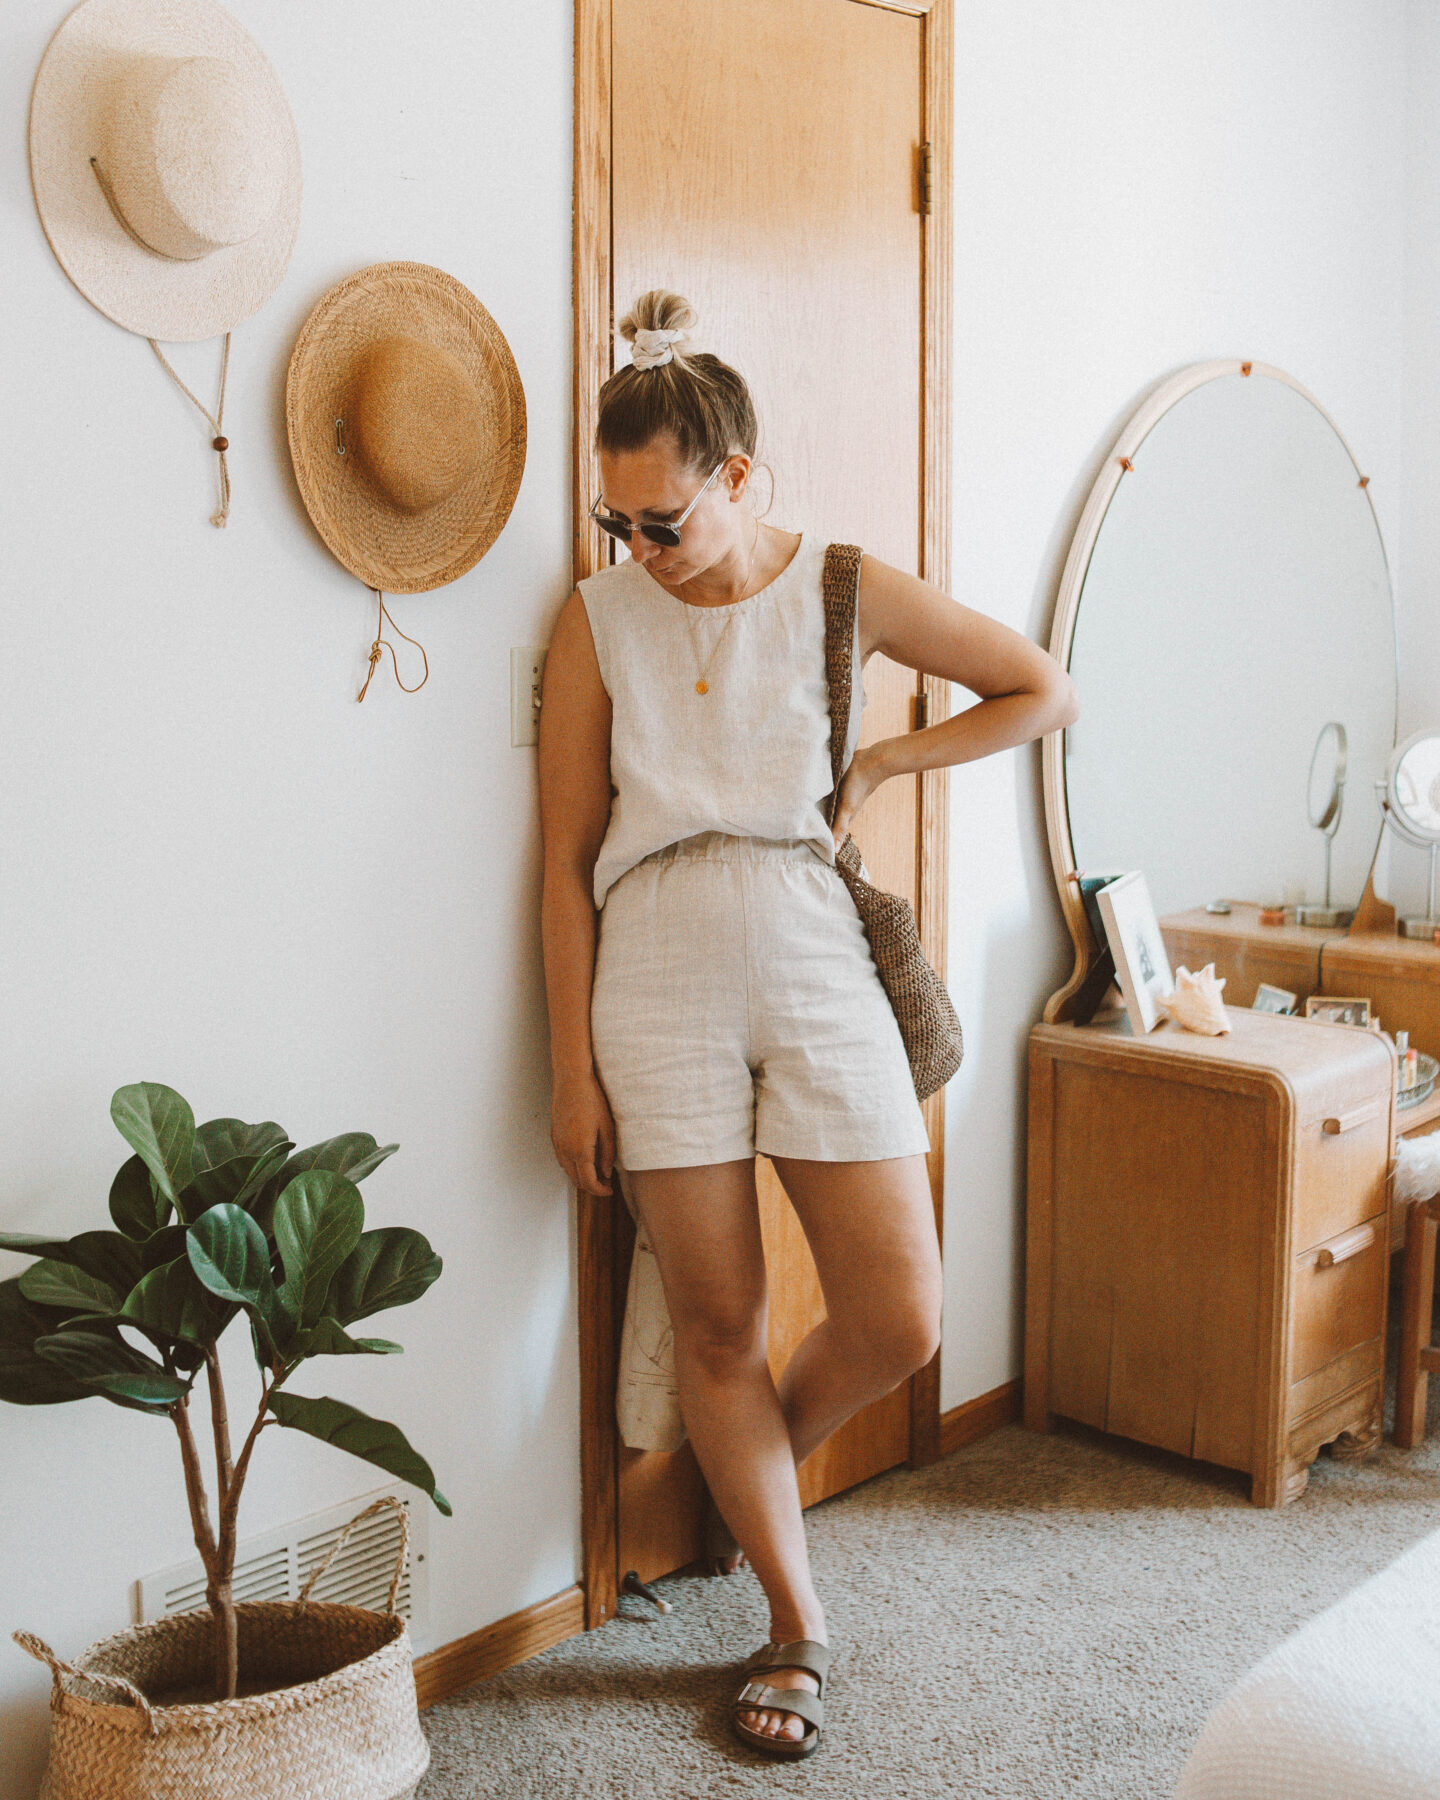 2021 Sandal Guide: All of the Best Styles Rounded Up